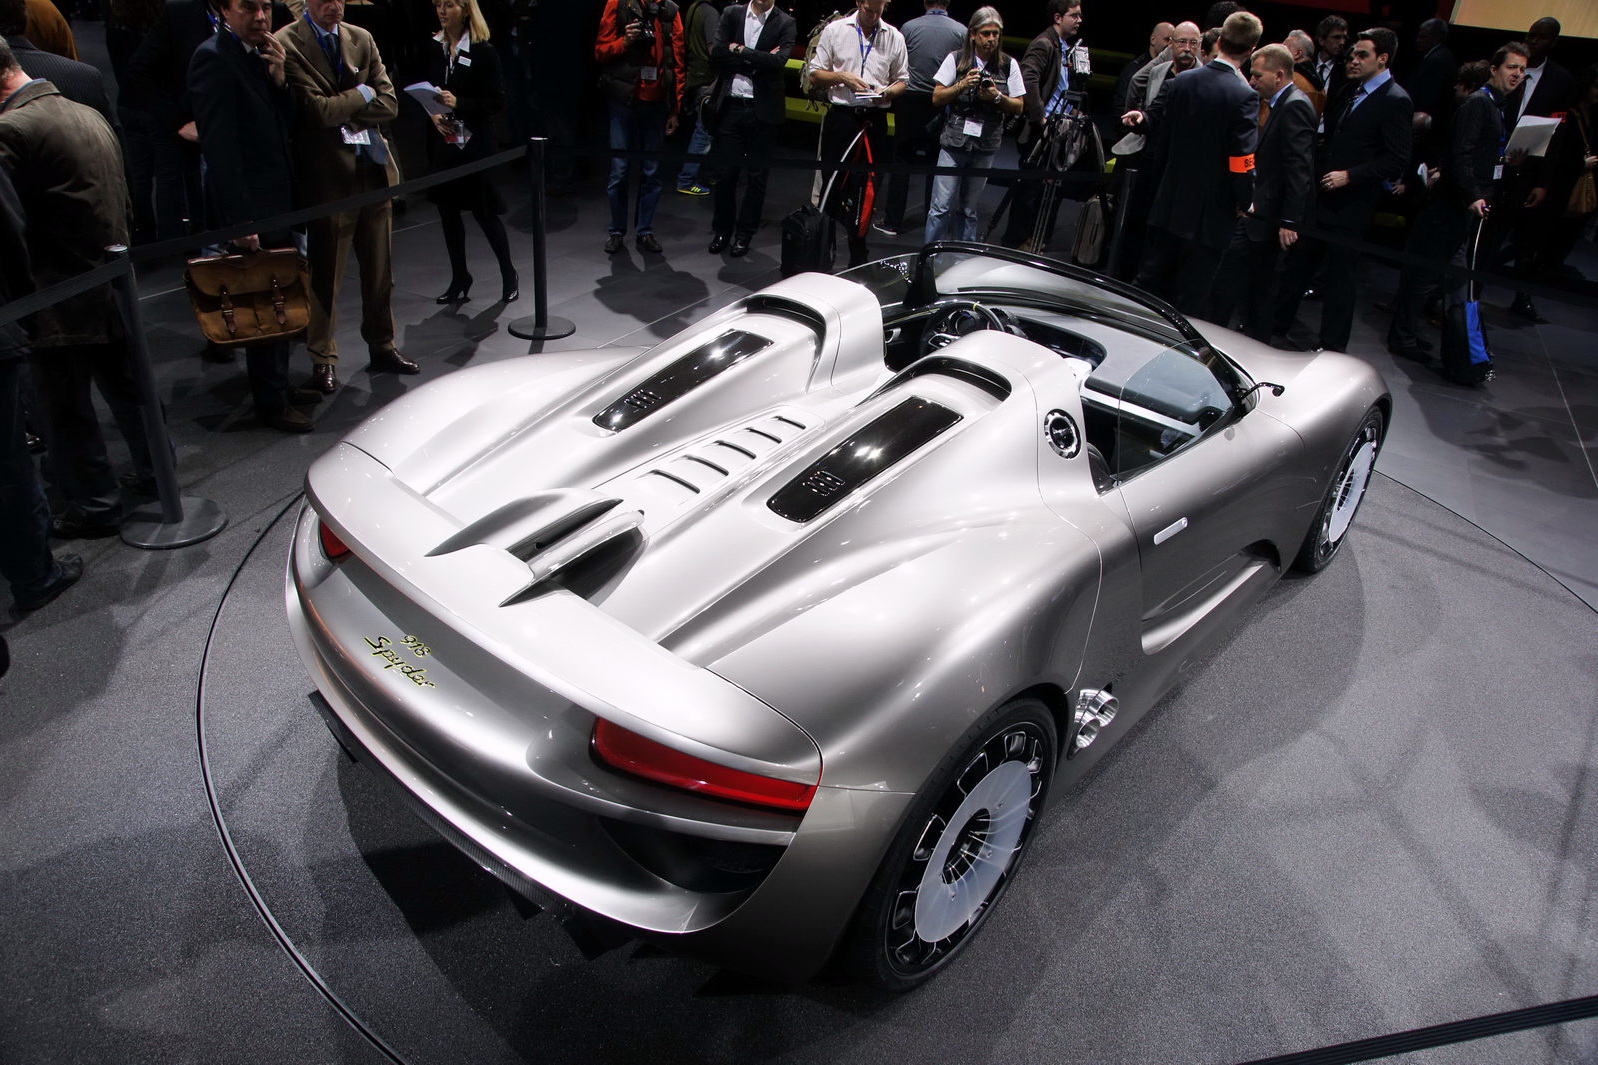 porsche announces pricing on 918 spyder hybrid supercar. Black Bedroom Furniture Sets. Home Design Ideas